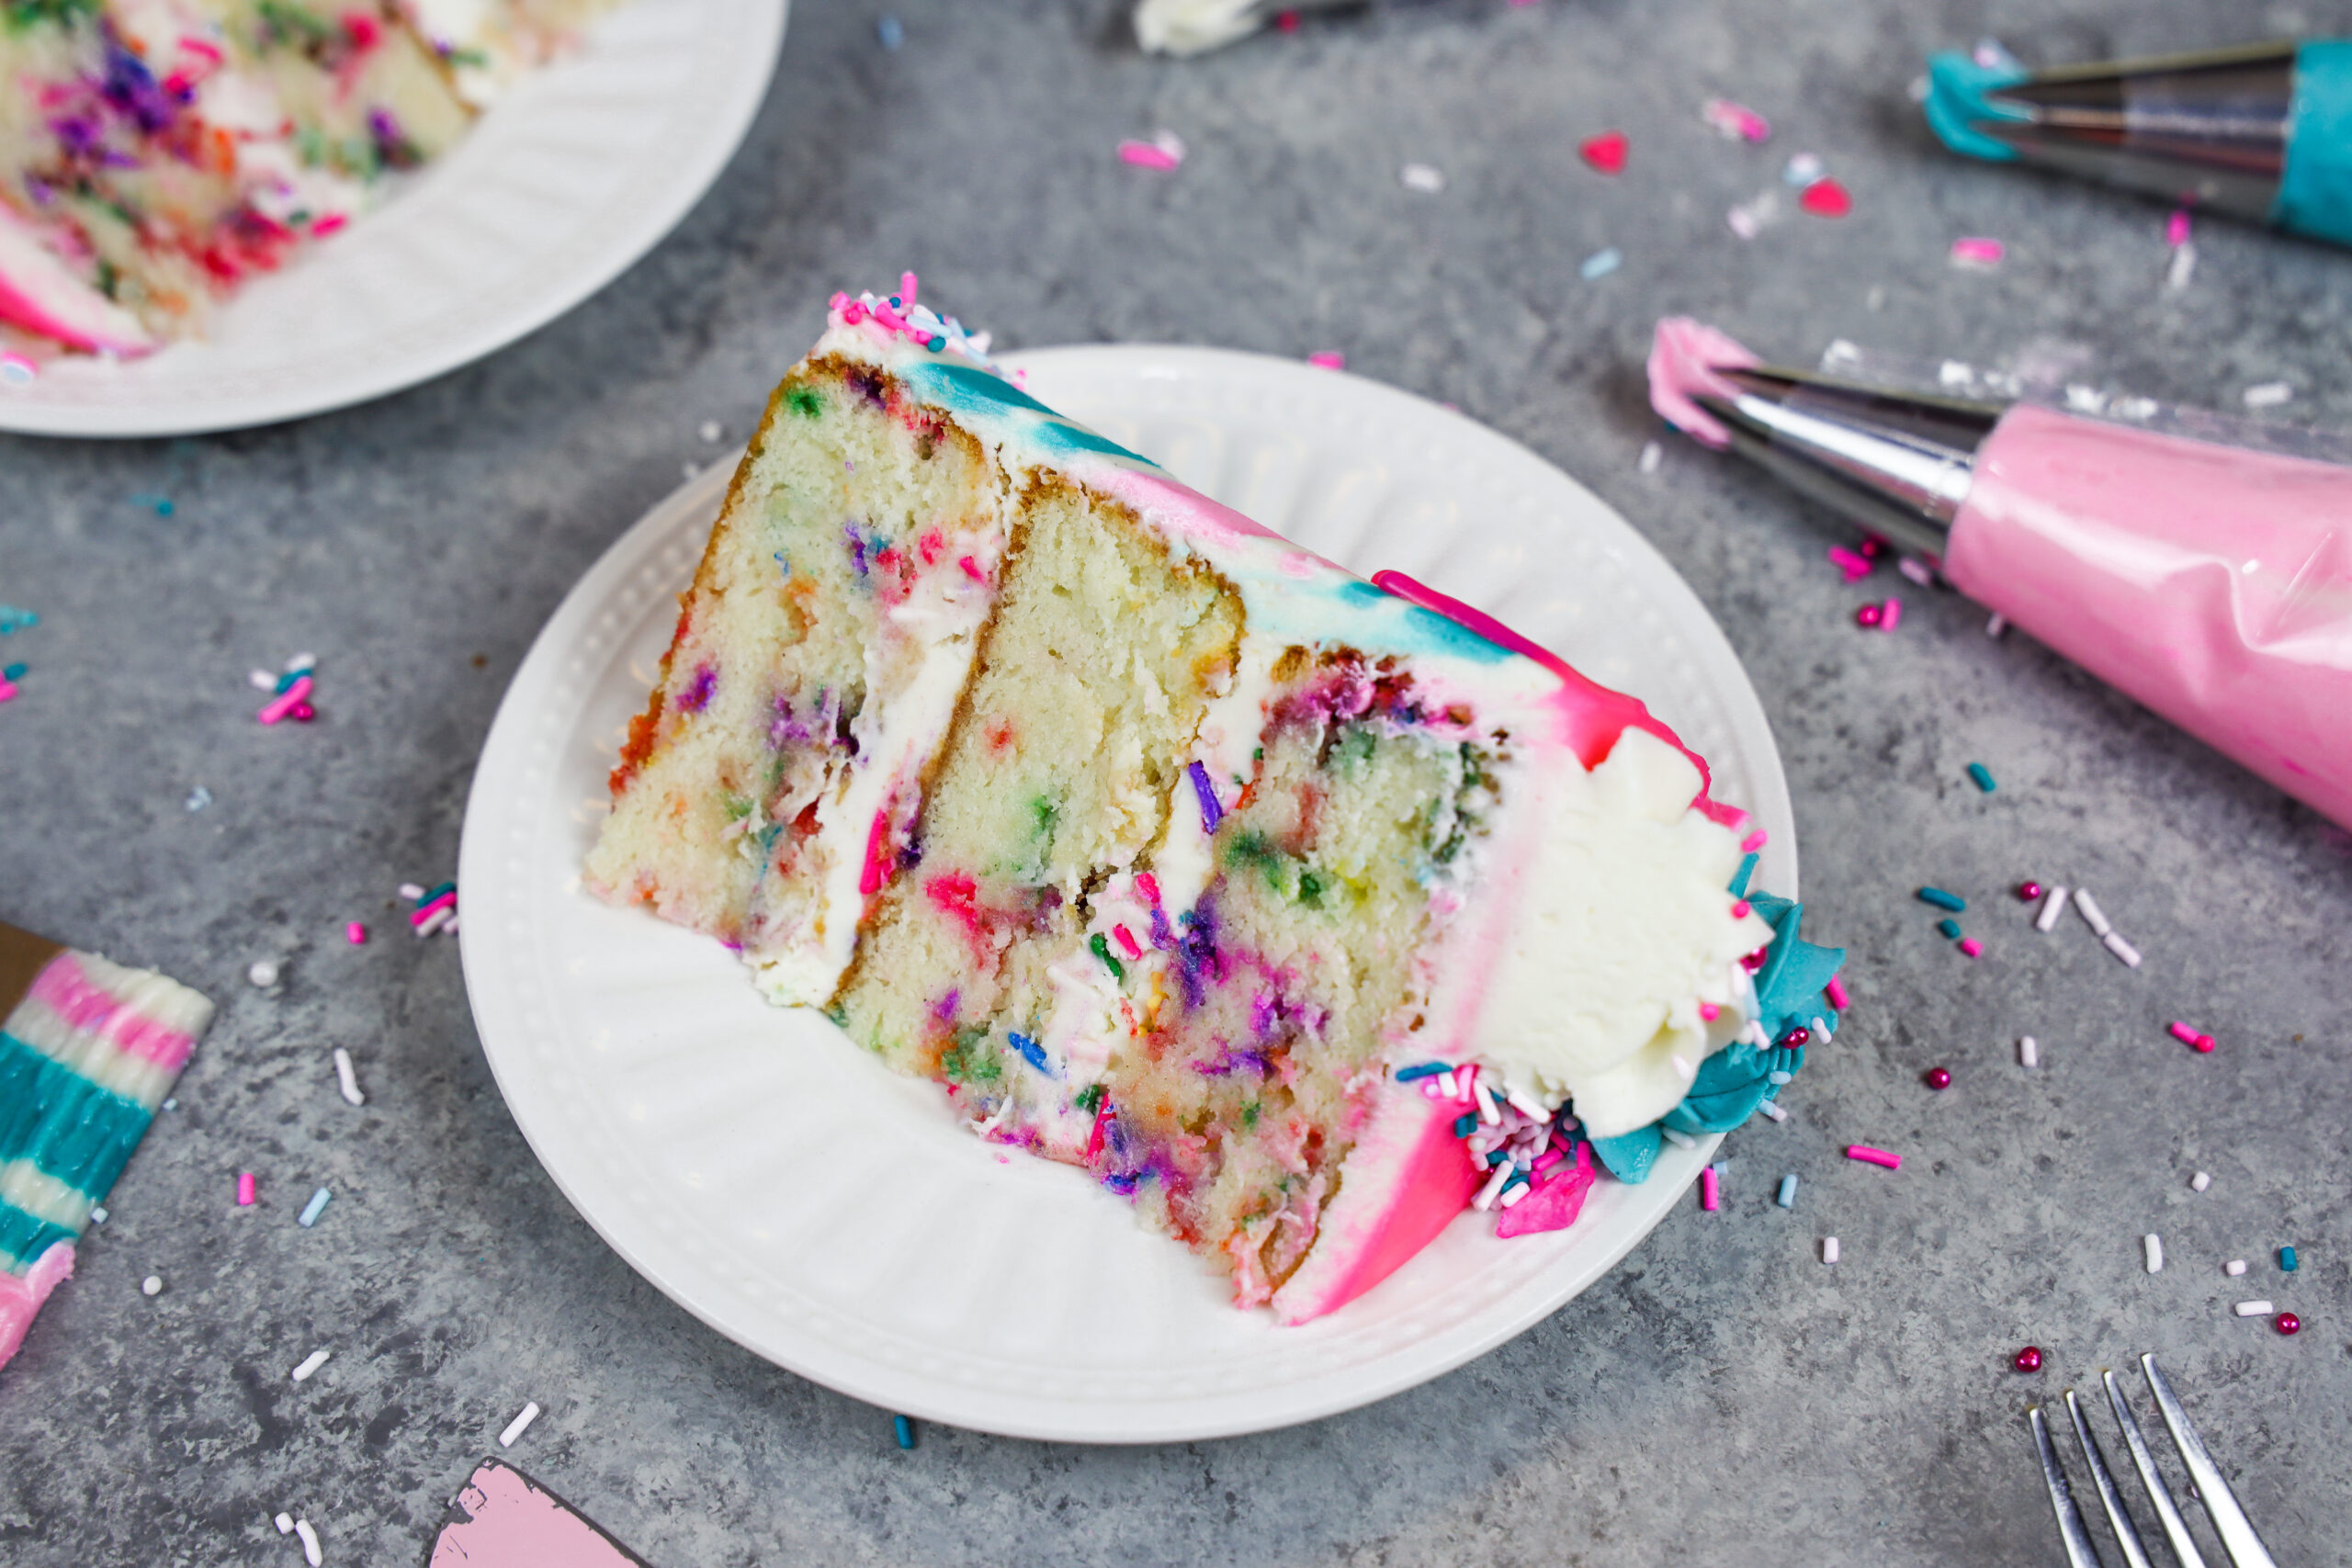 image of a slice of gluten free funfetti cake on a plate ready to be eaten